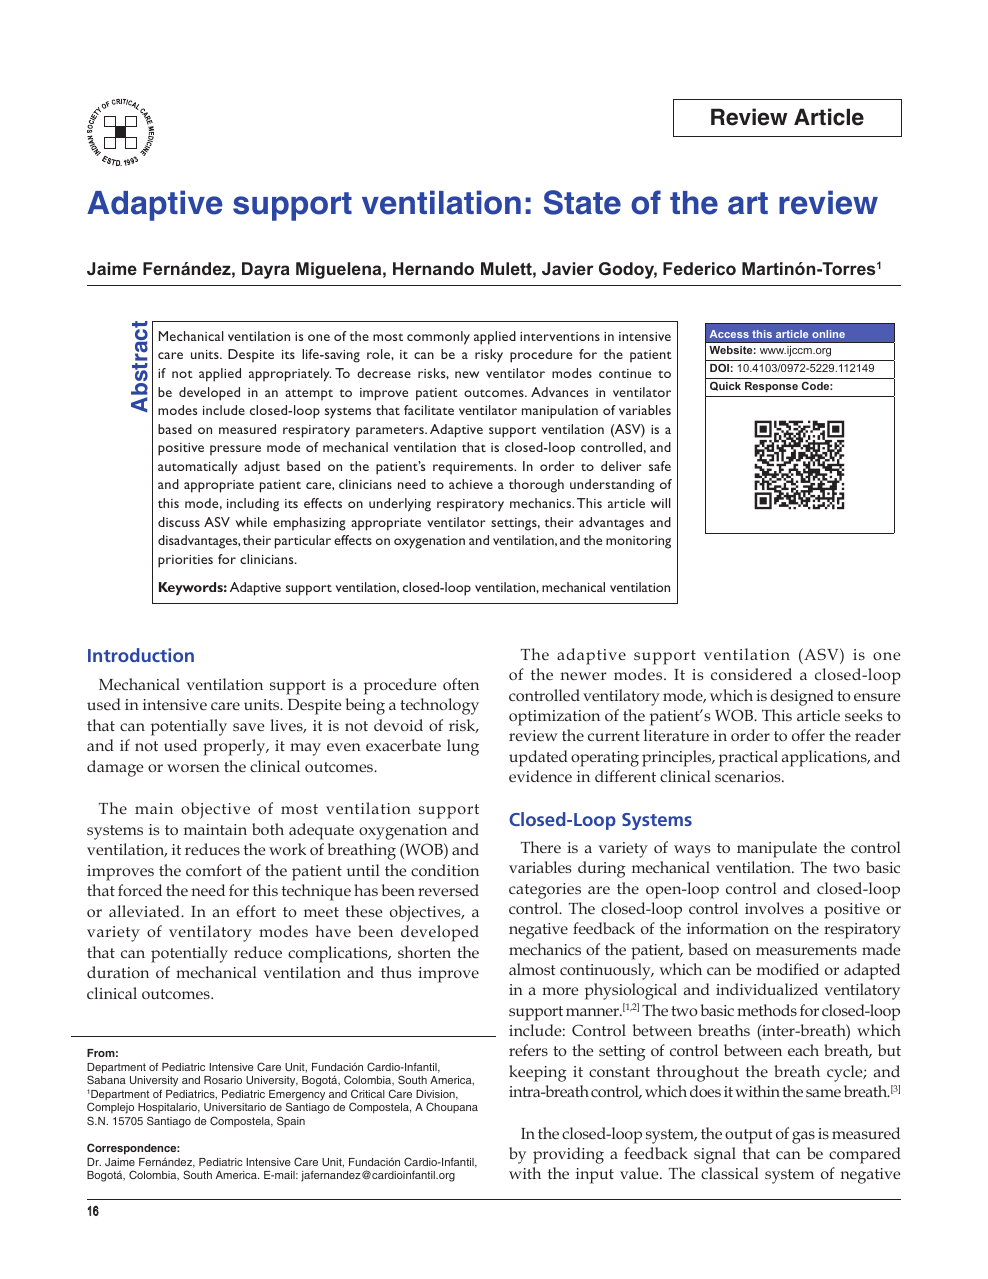 Adaptive support ventilation: State of the art review